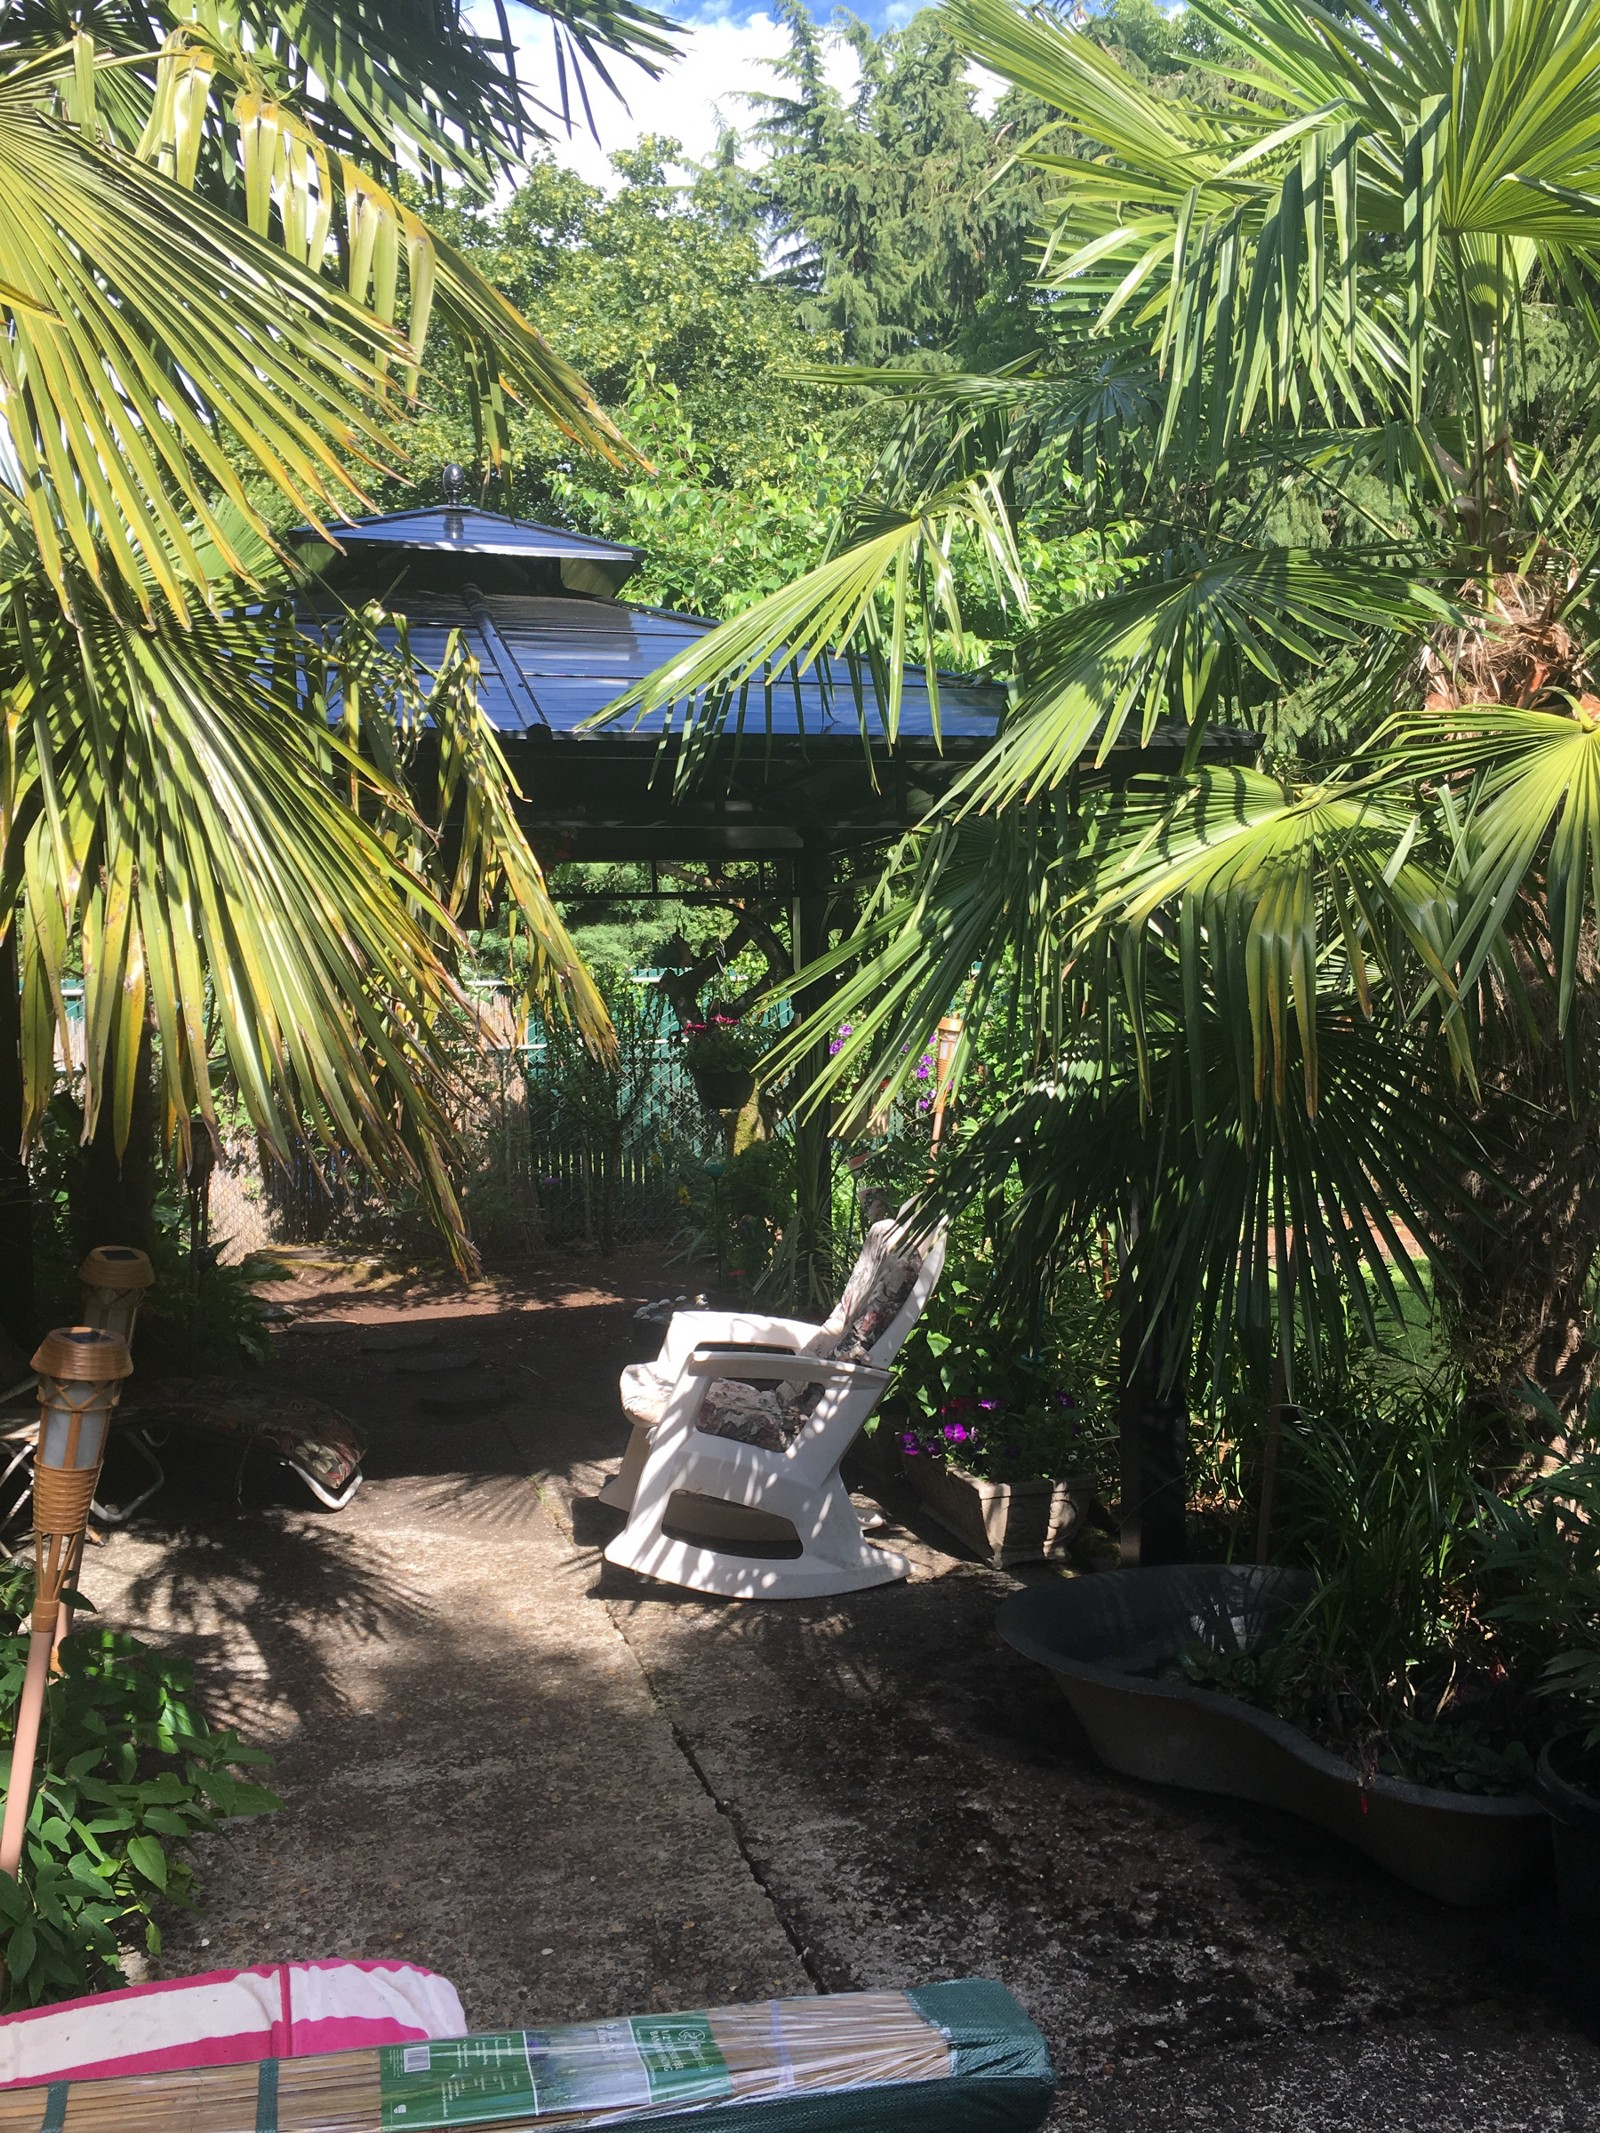 tropical gardens with bananas and palm trees in portland oregon